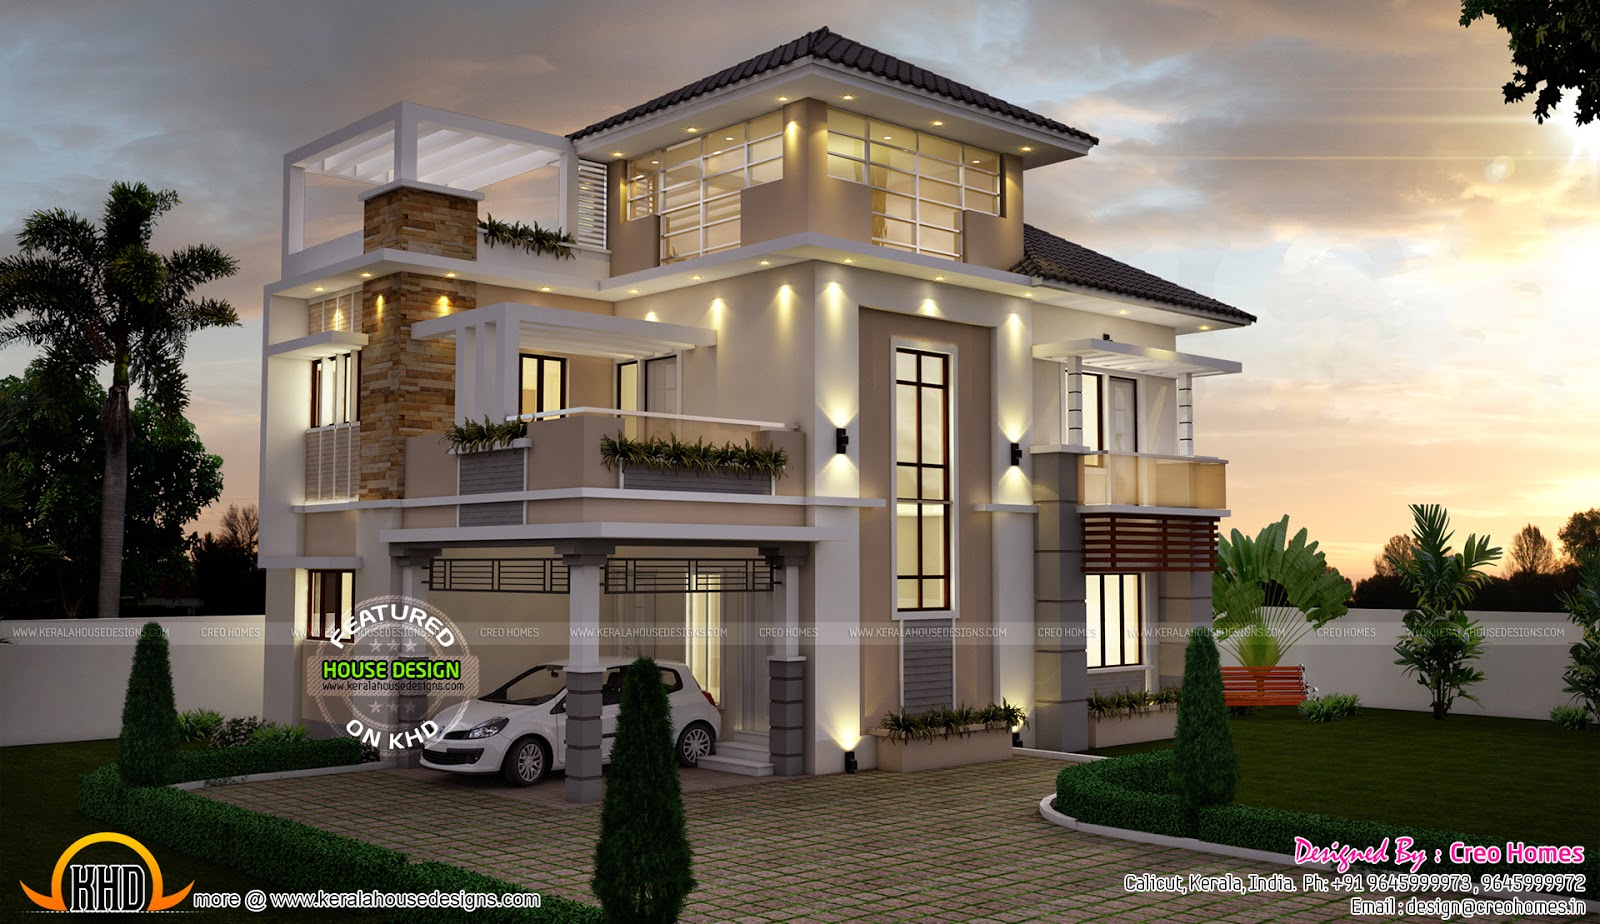 Super stylish contemporary house kerala home design and for Home design ideas contemporary